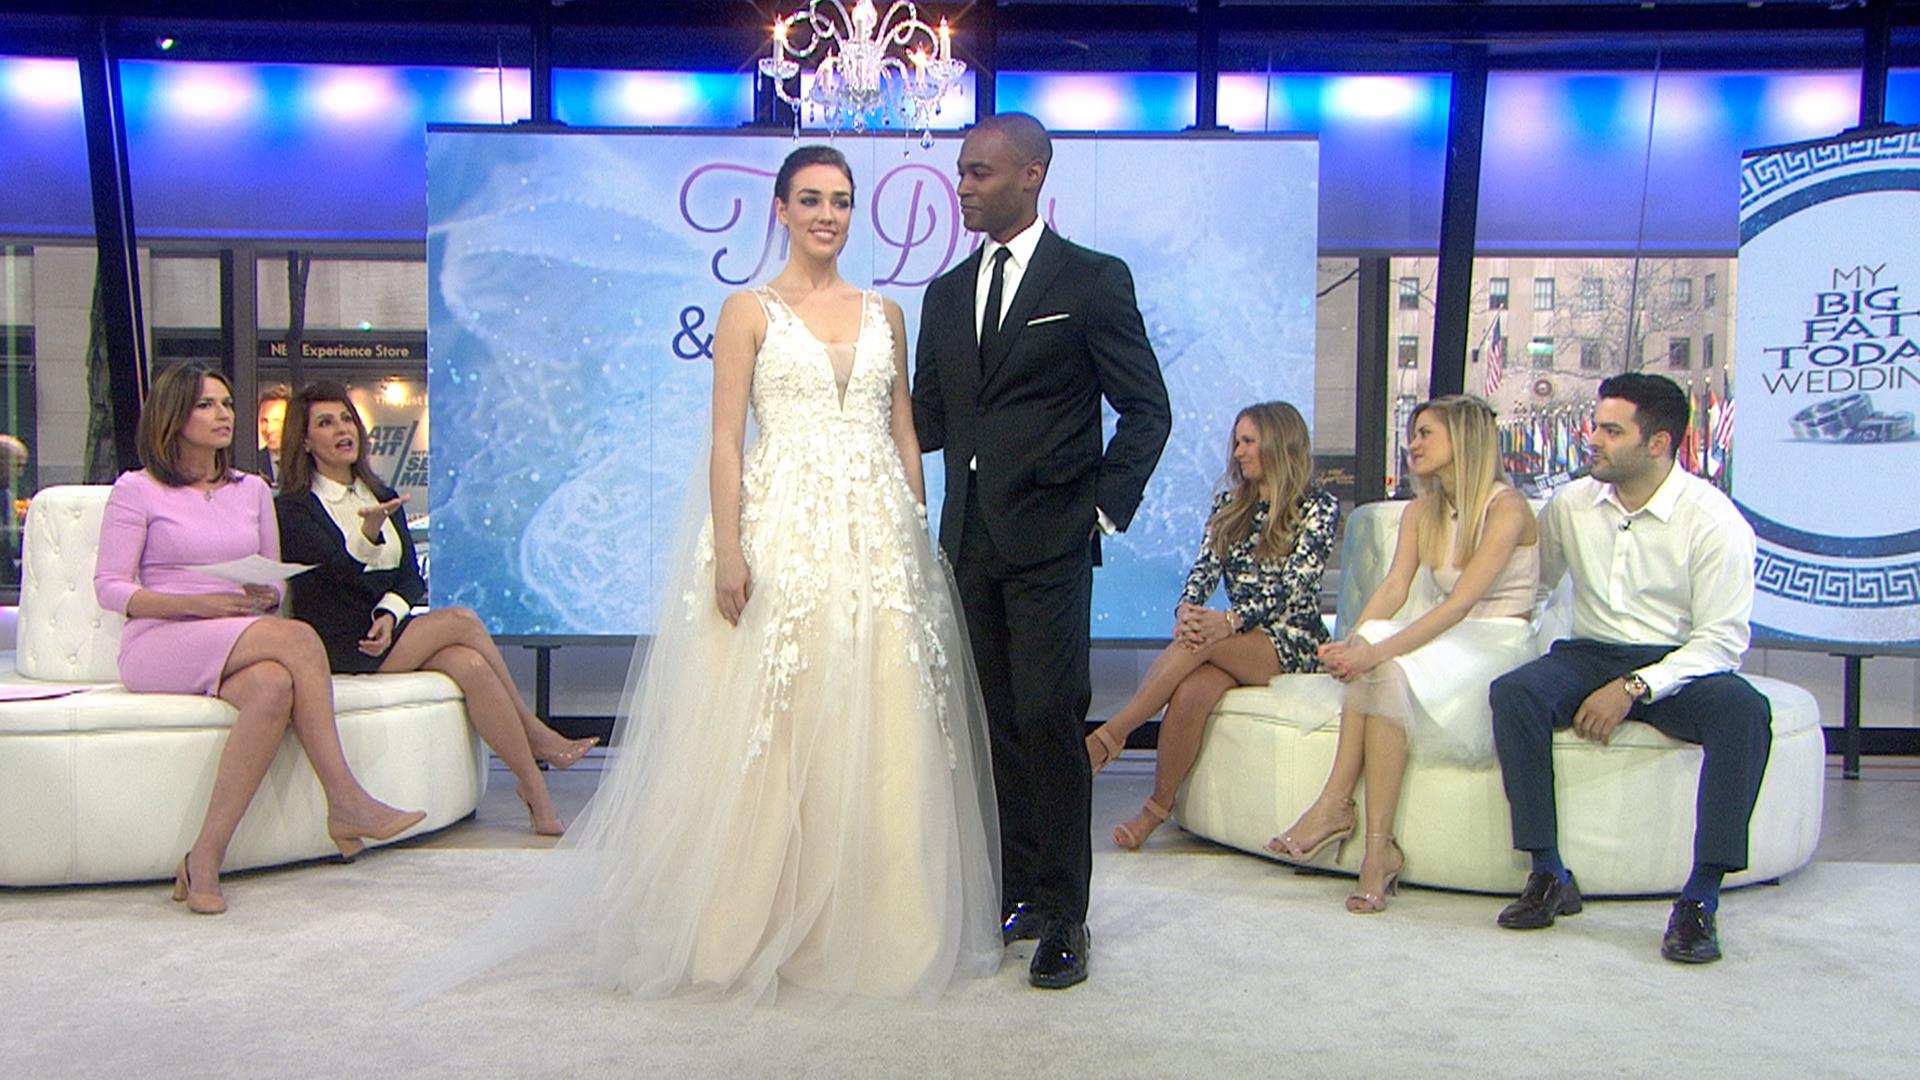 See the gown and tux options for My Big Fat TODAY Wedding unveiled